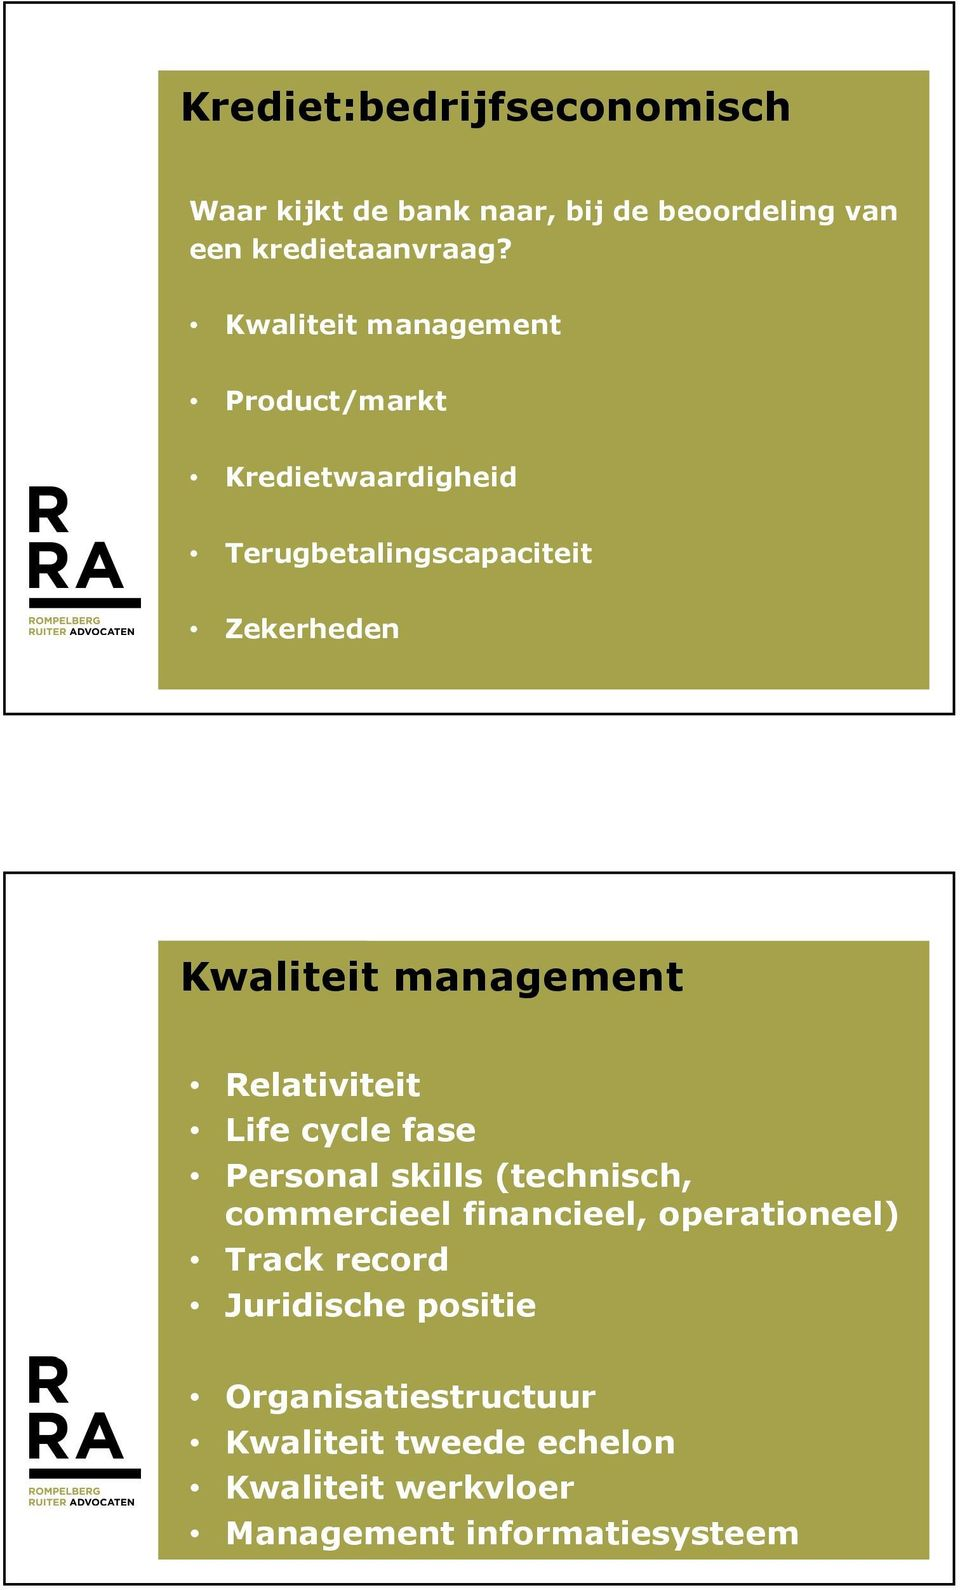 management Relativiteit Life cycle fase Personal skills (technisch, commercieel financieel, operationeel)